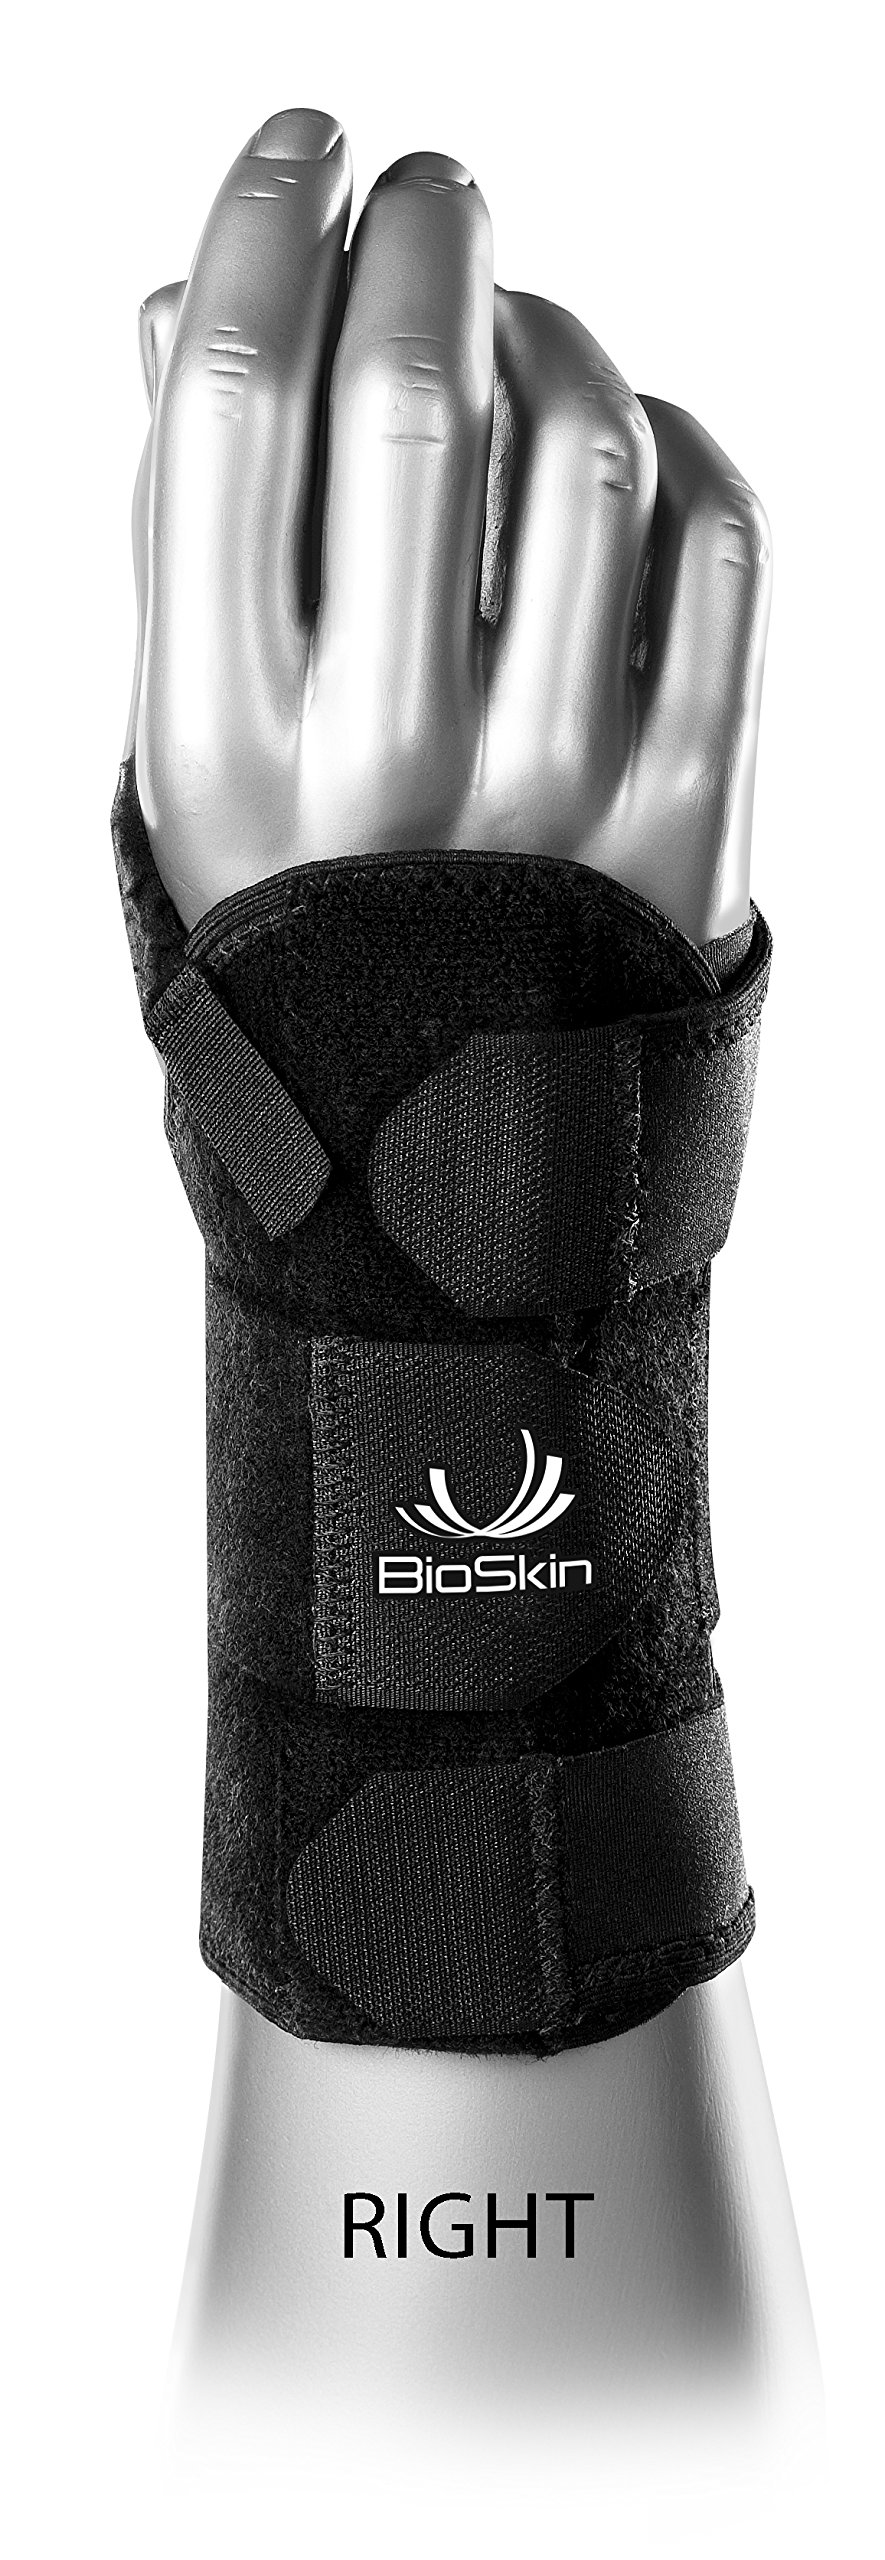 BioSkin DP2 Wrist Brace, Right Hand, X-Small/Small